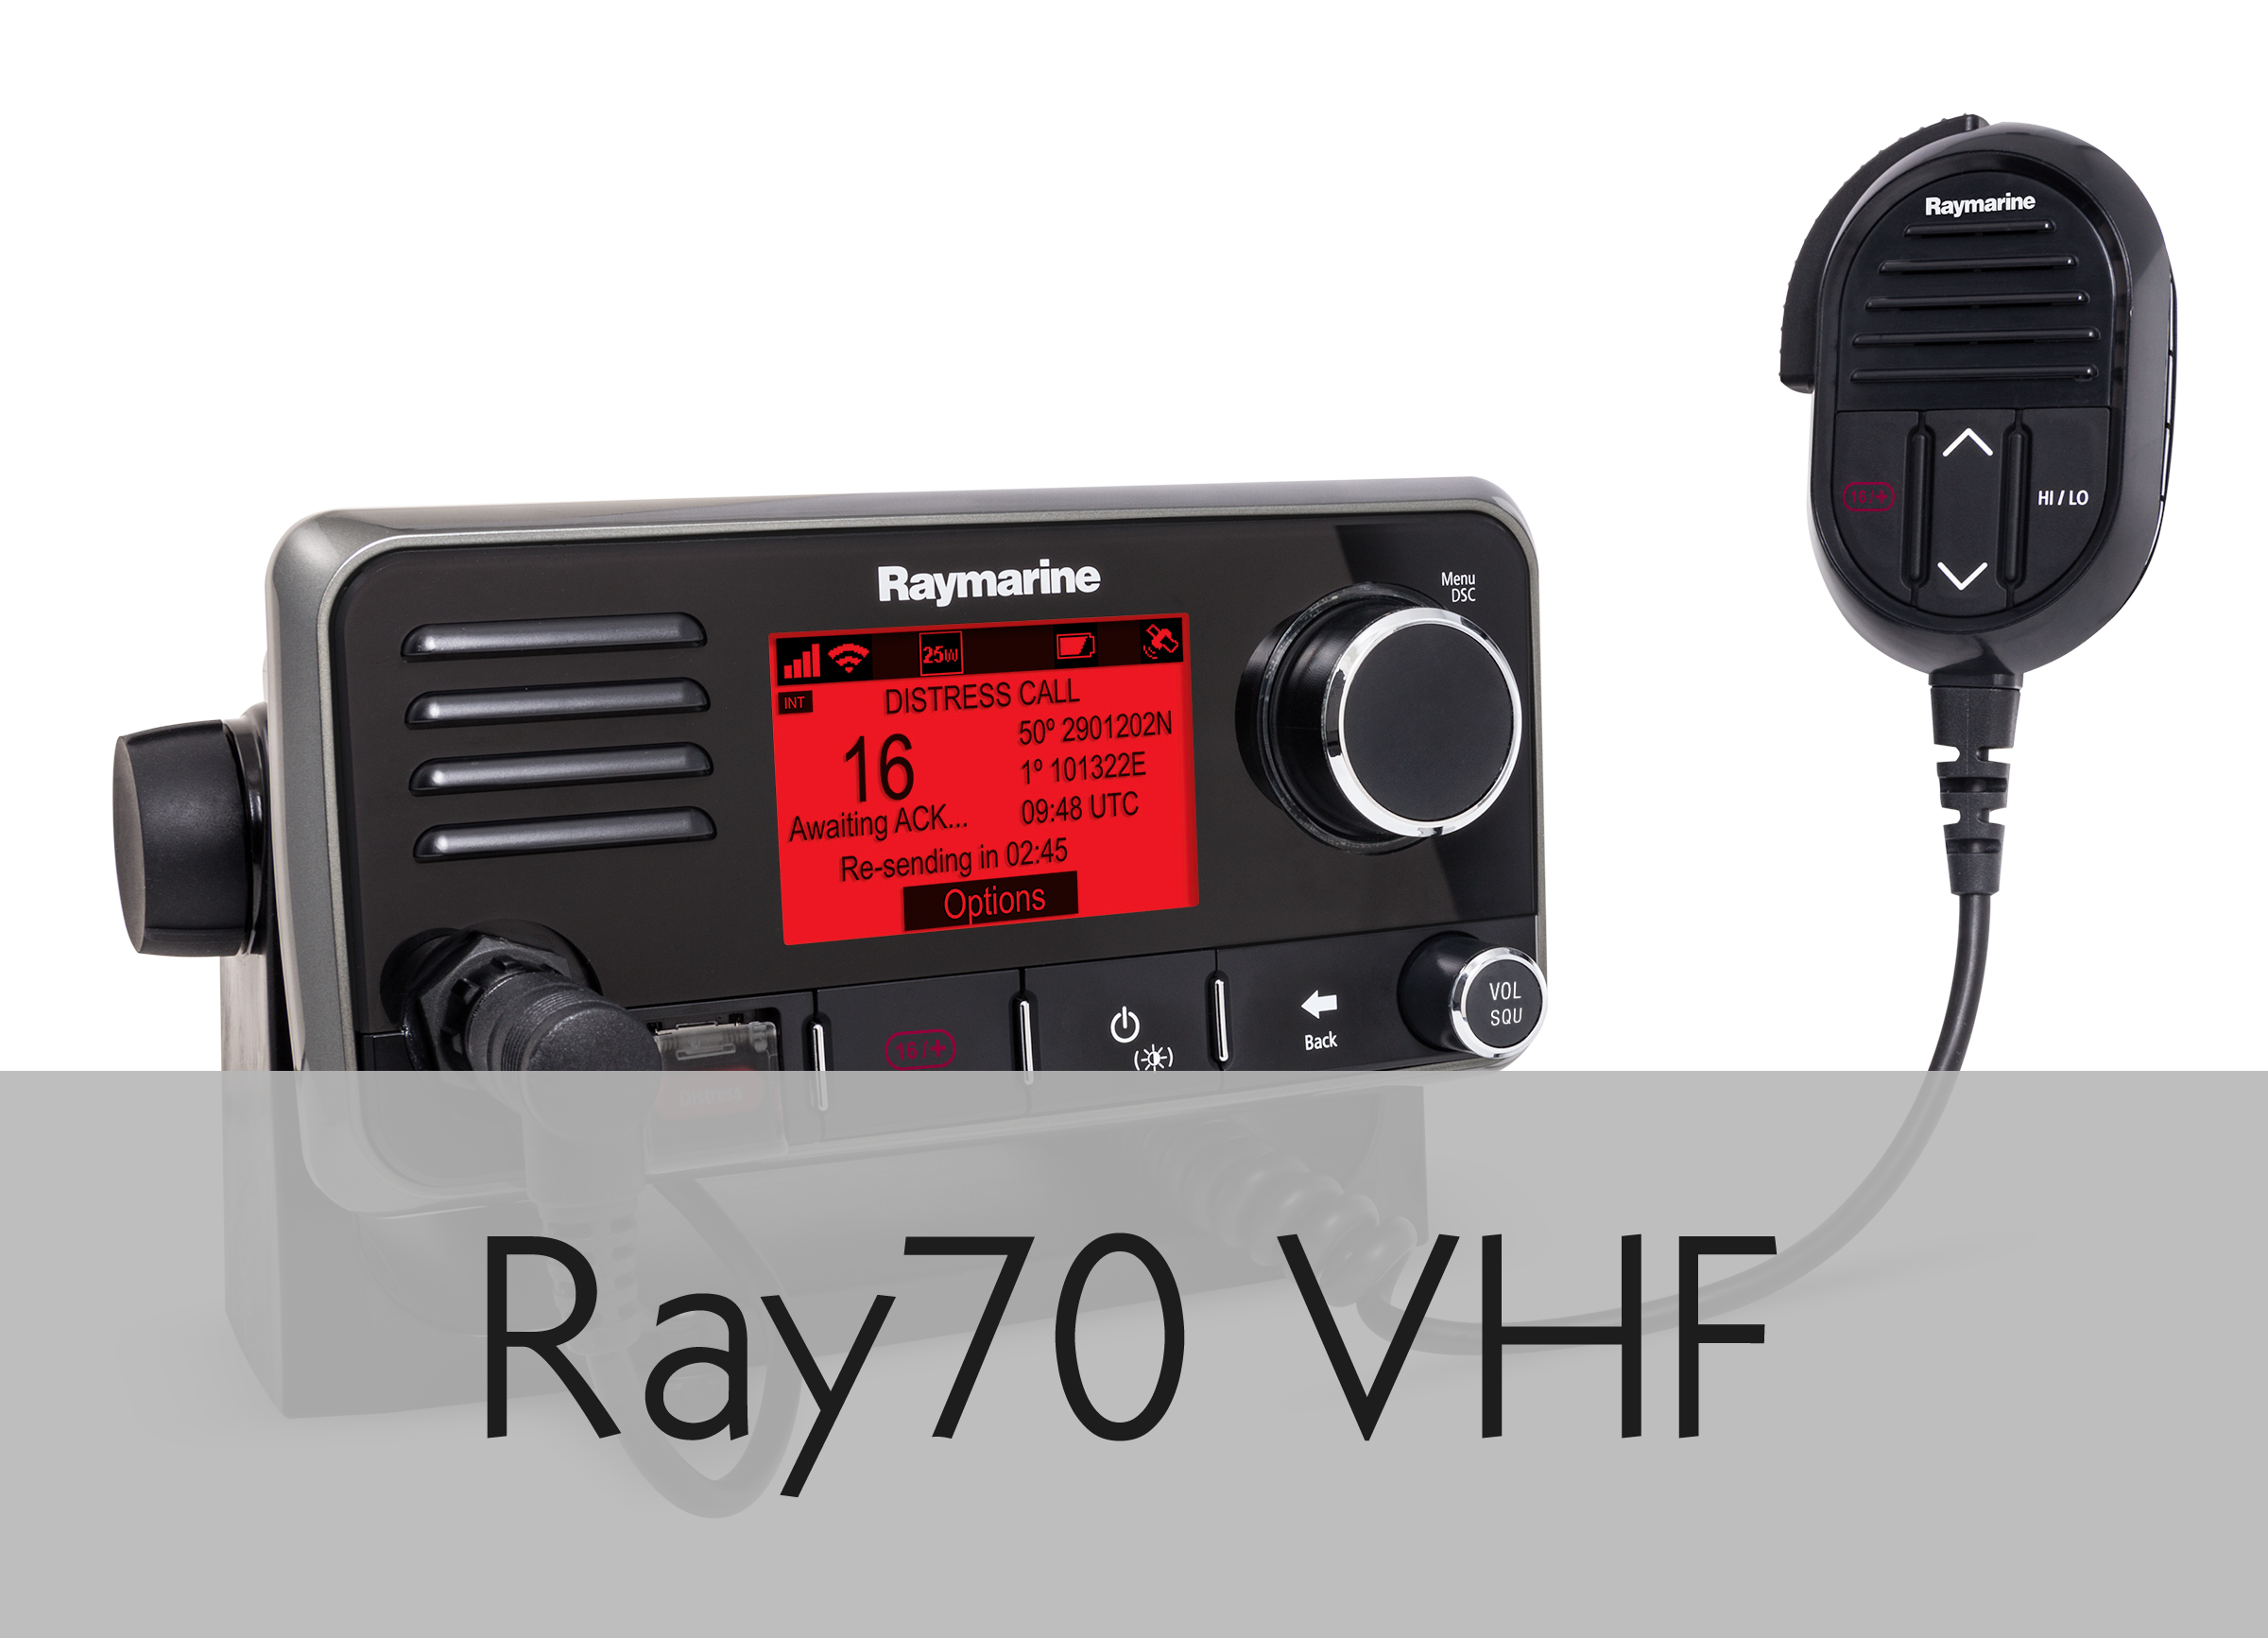 ray70 vhf find out more